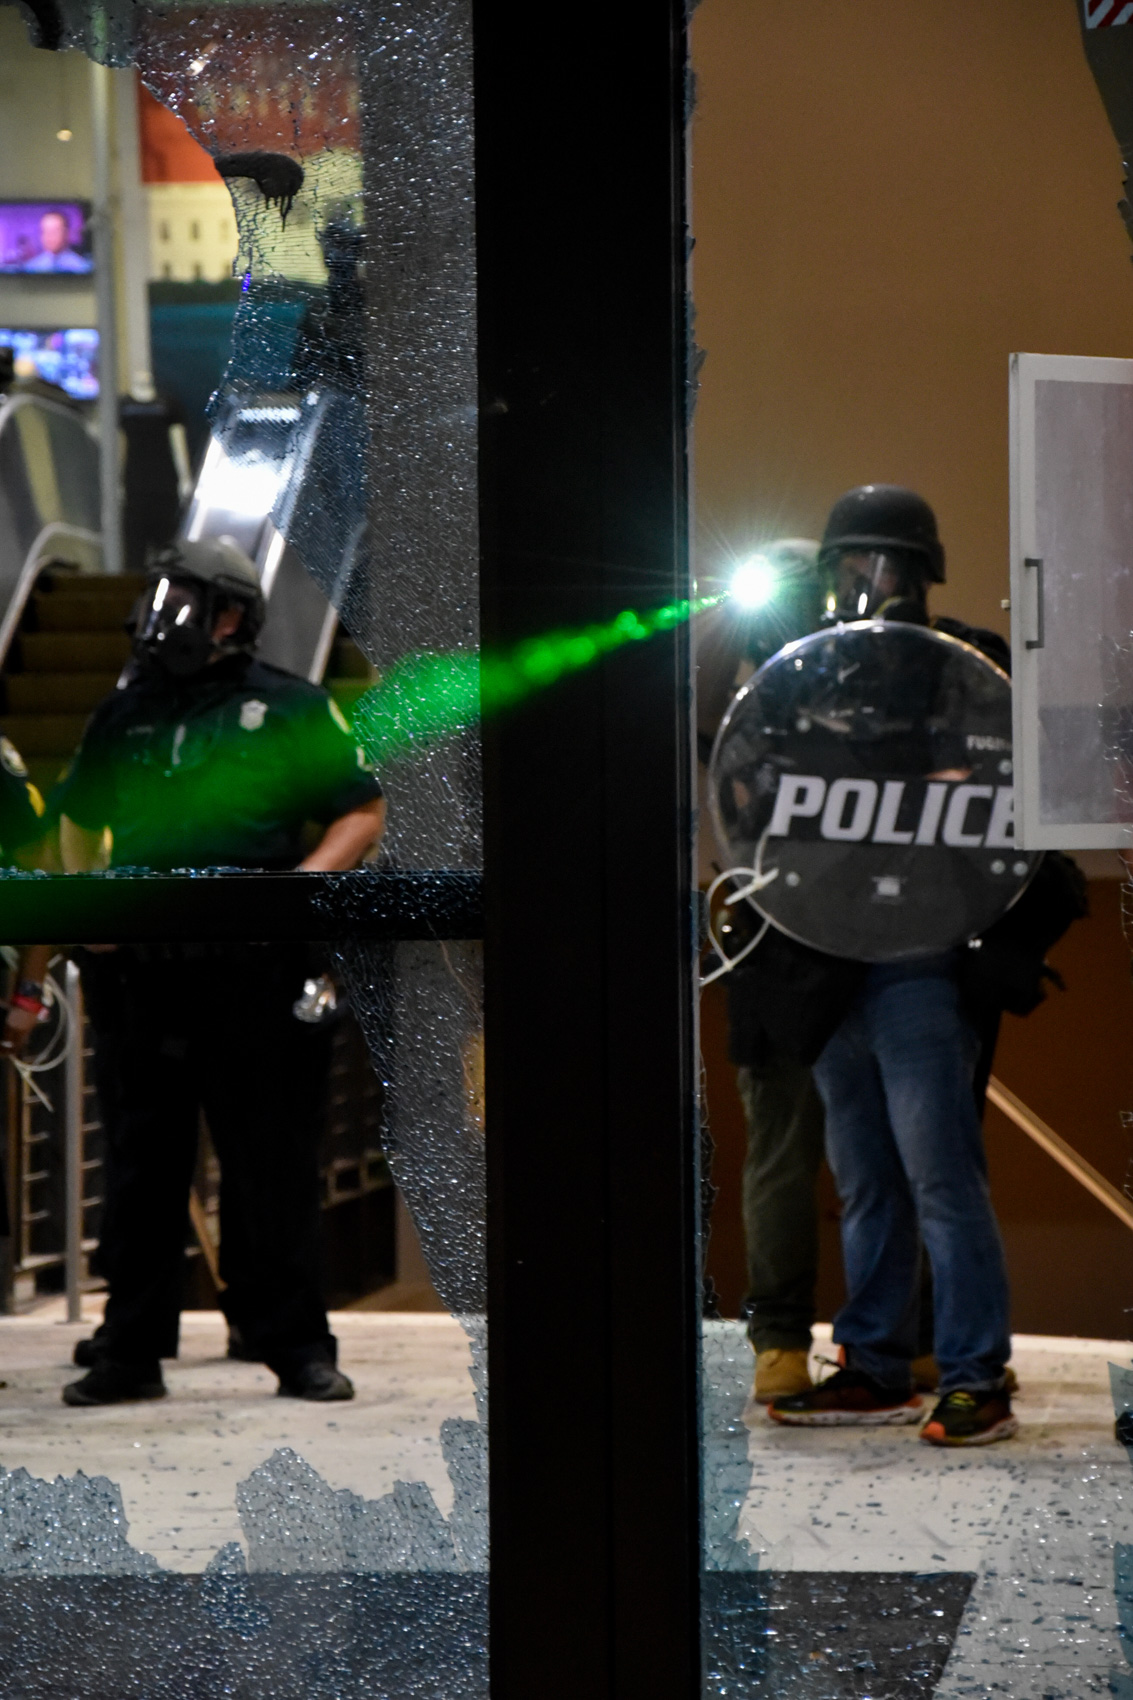 police officer holds up riot shield while another points a green laser